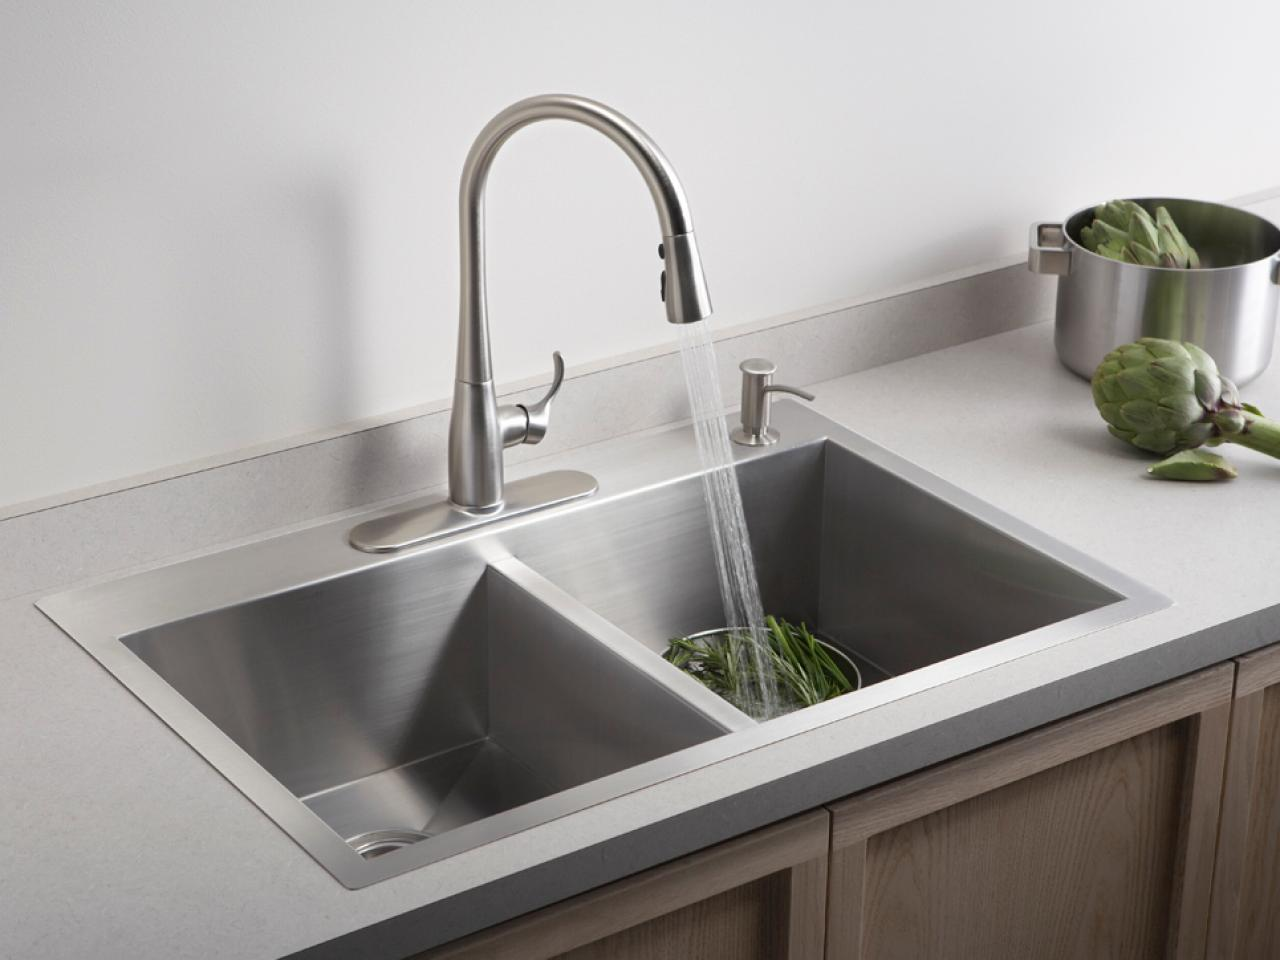 Kitchen Sink Appliances simple choosing kitchen appliances kitchen designs choose kitchen types of kitchen sinks uk types of kitchen The Latest Trends In Kitchen Sinks